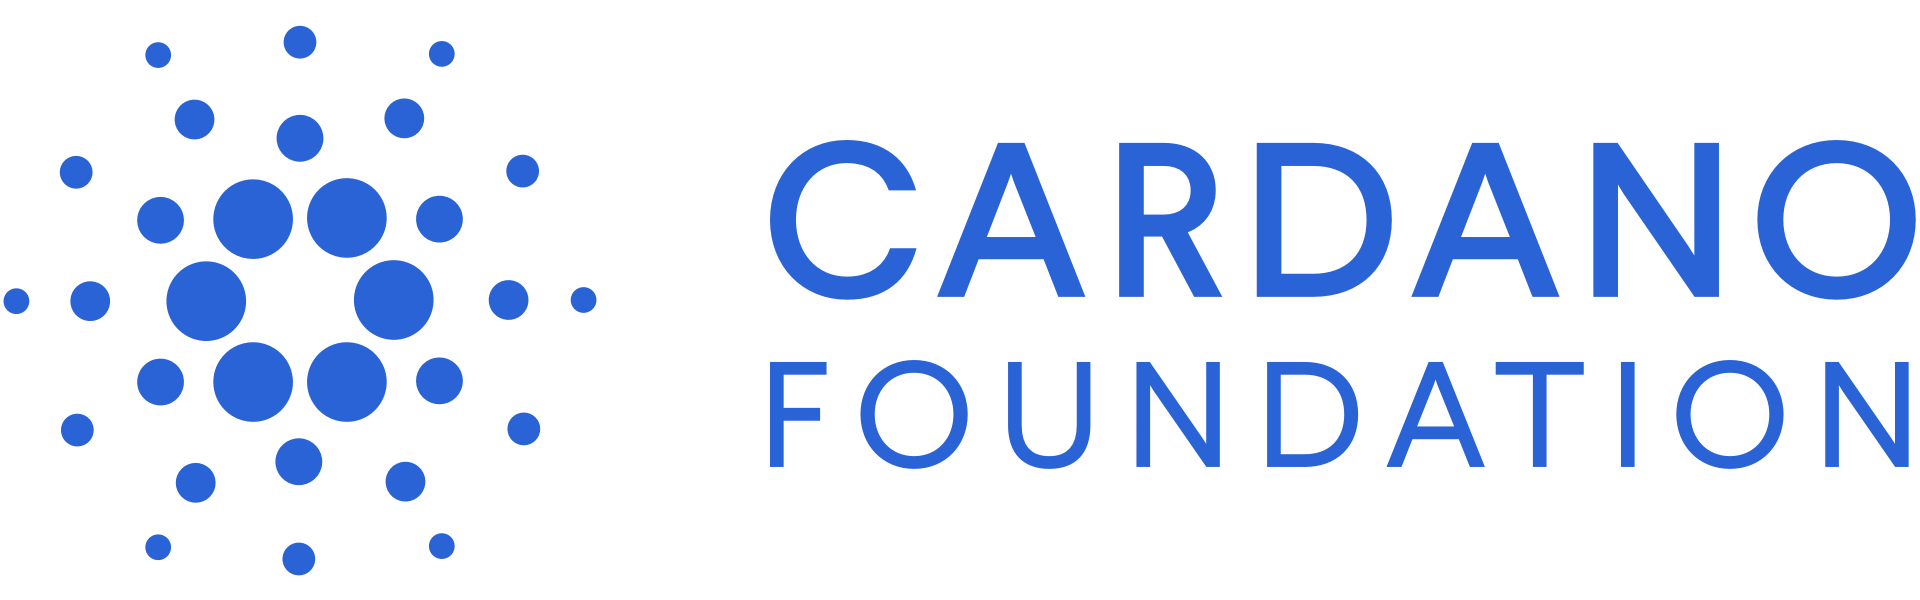 Cardano Foundation logo